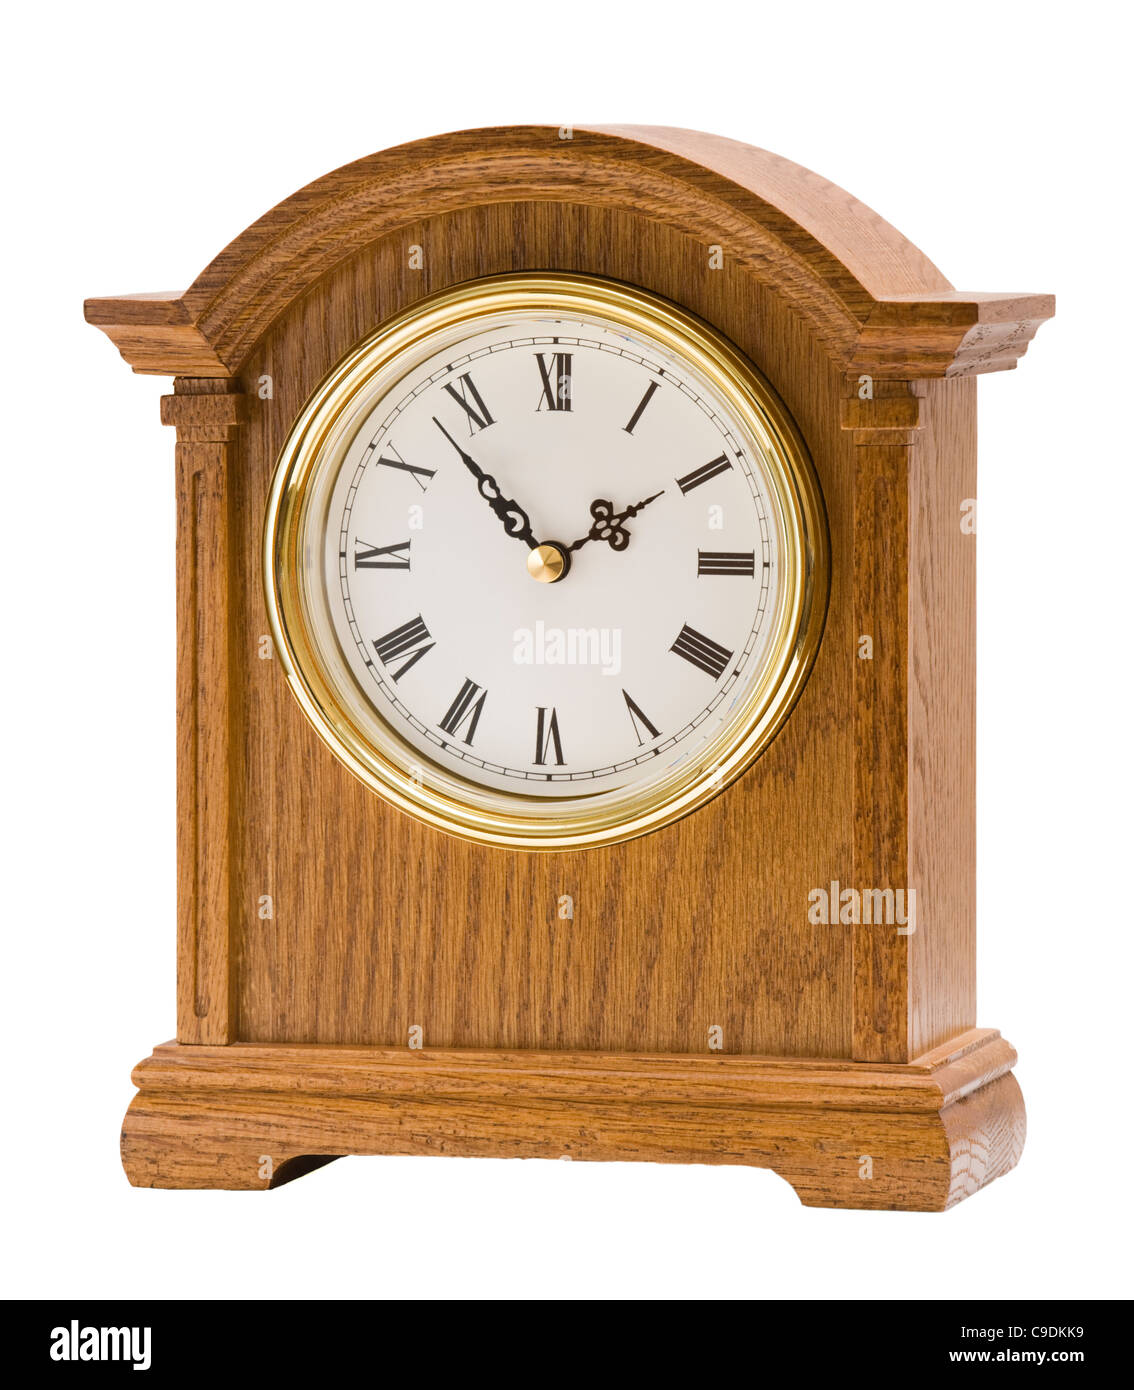 Clock. - Stock Image